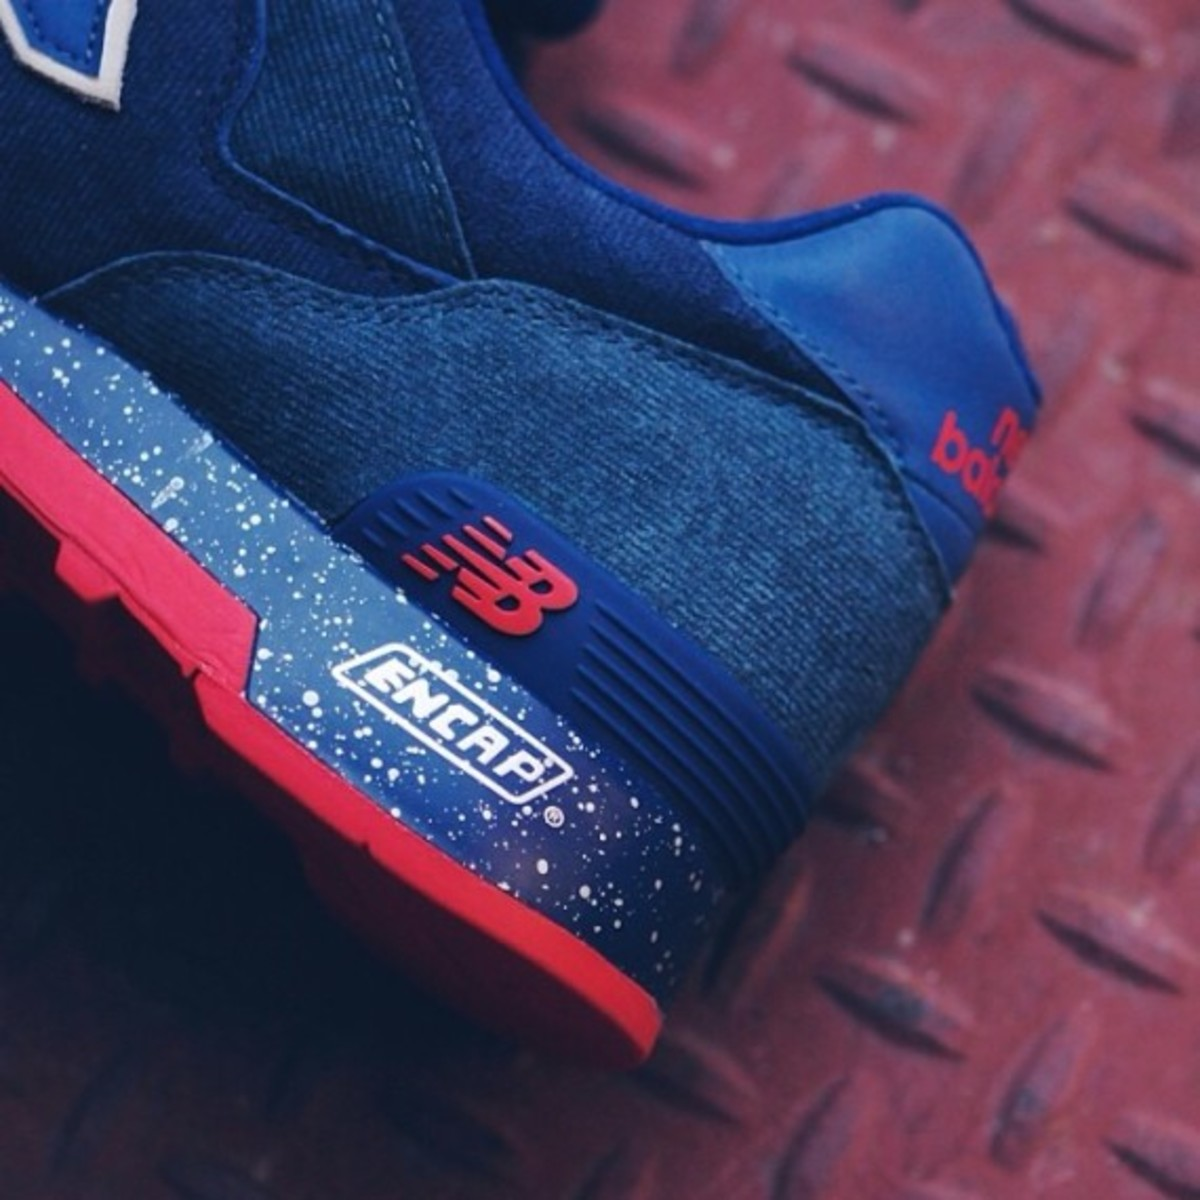 ronnie-feig-new-balance-577-americana-cyber-monday-release-04